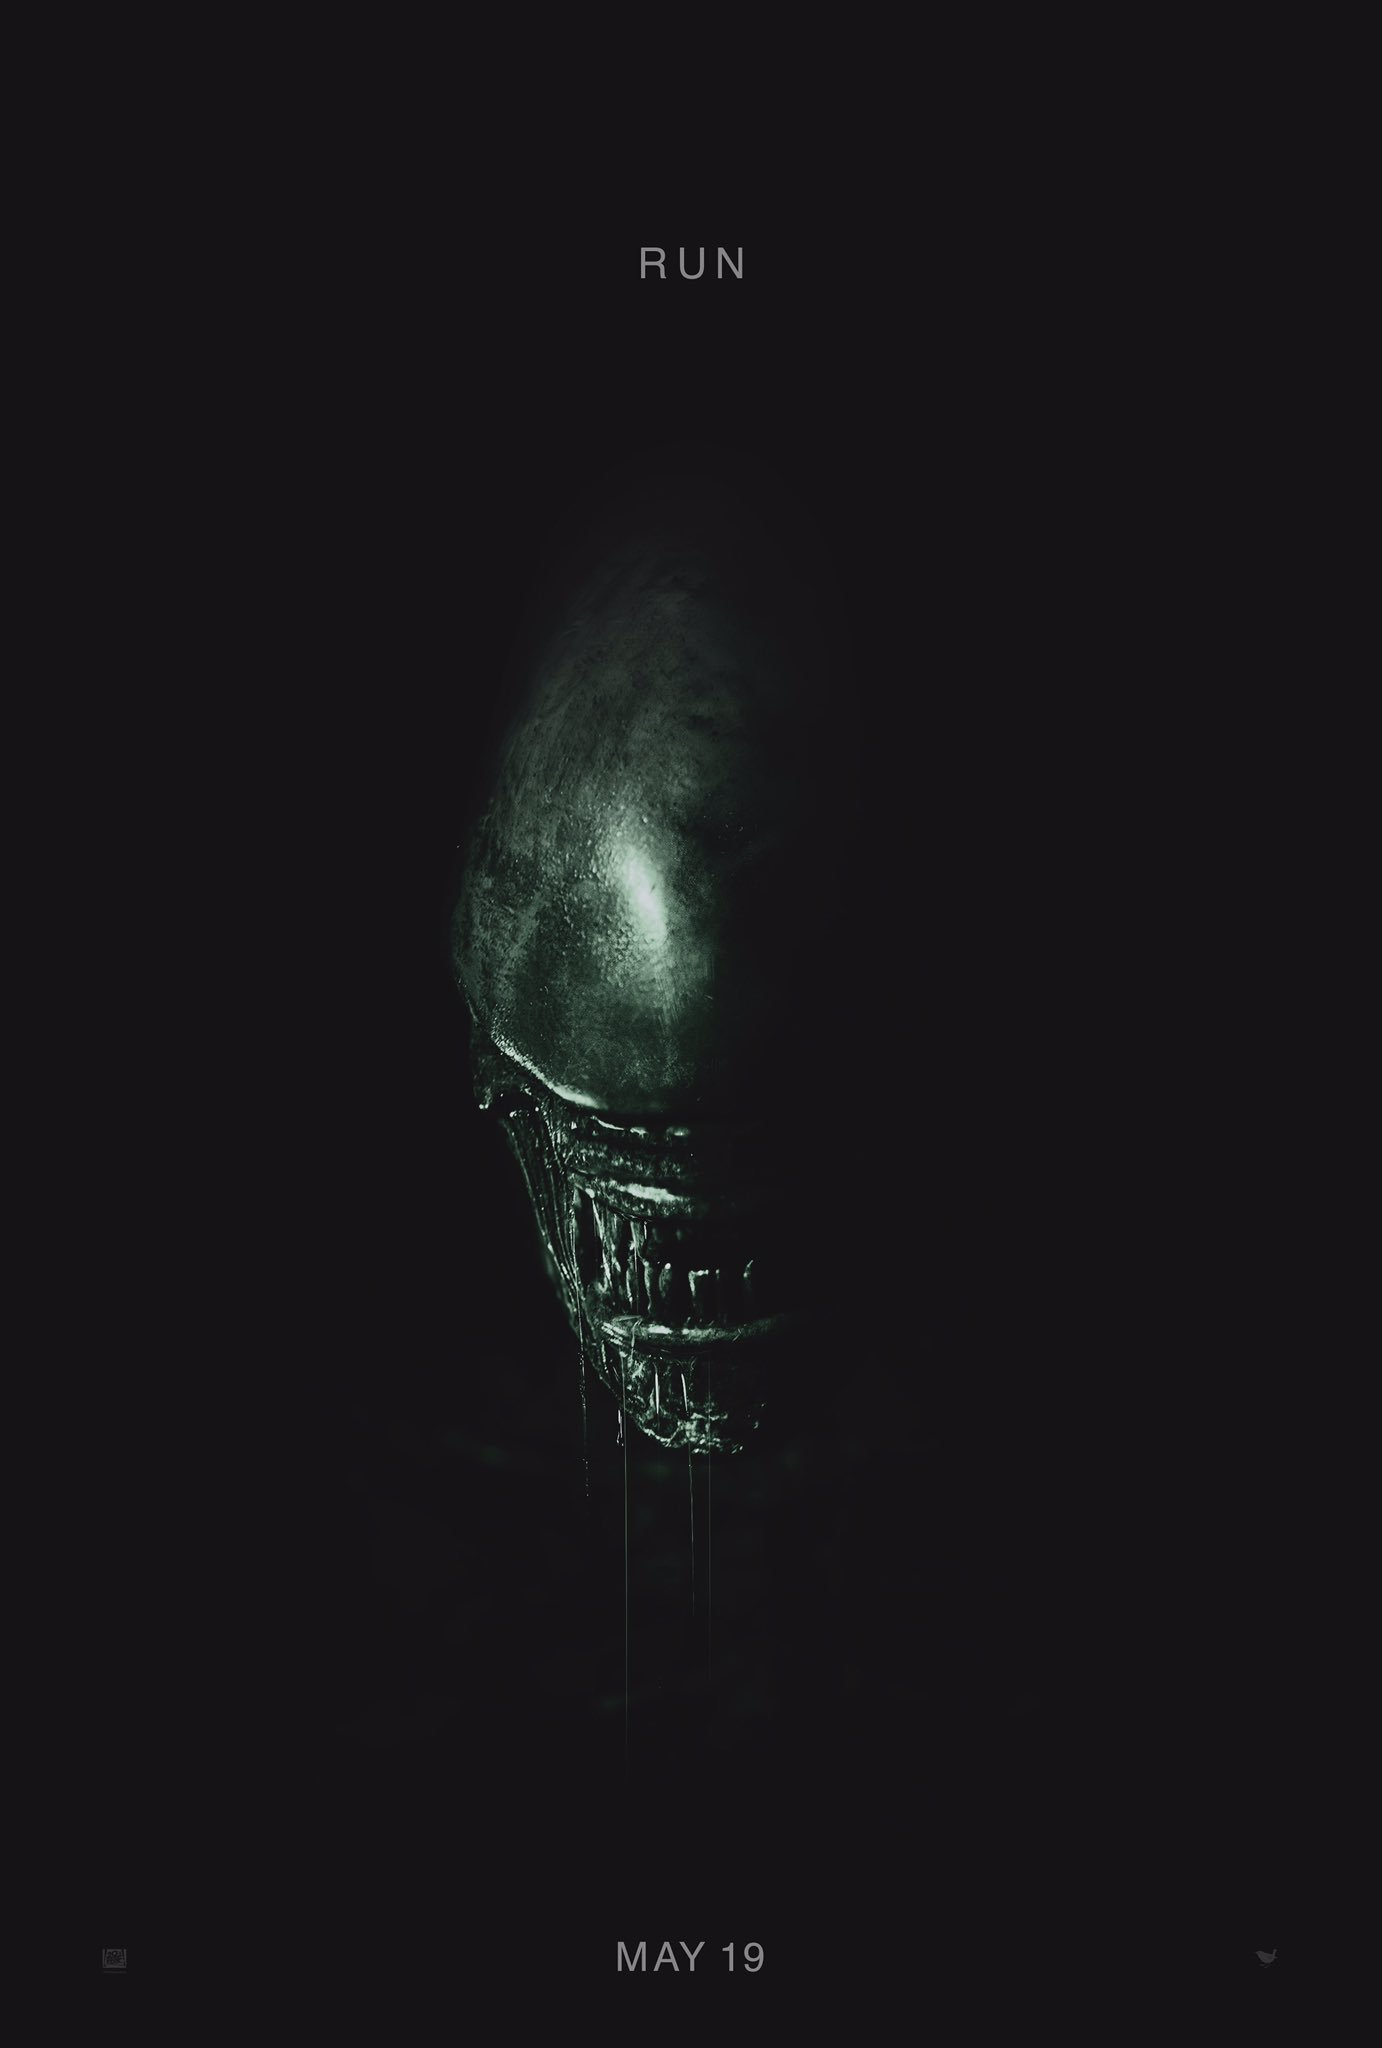 The First Alien Covenant Poster is Here